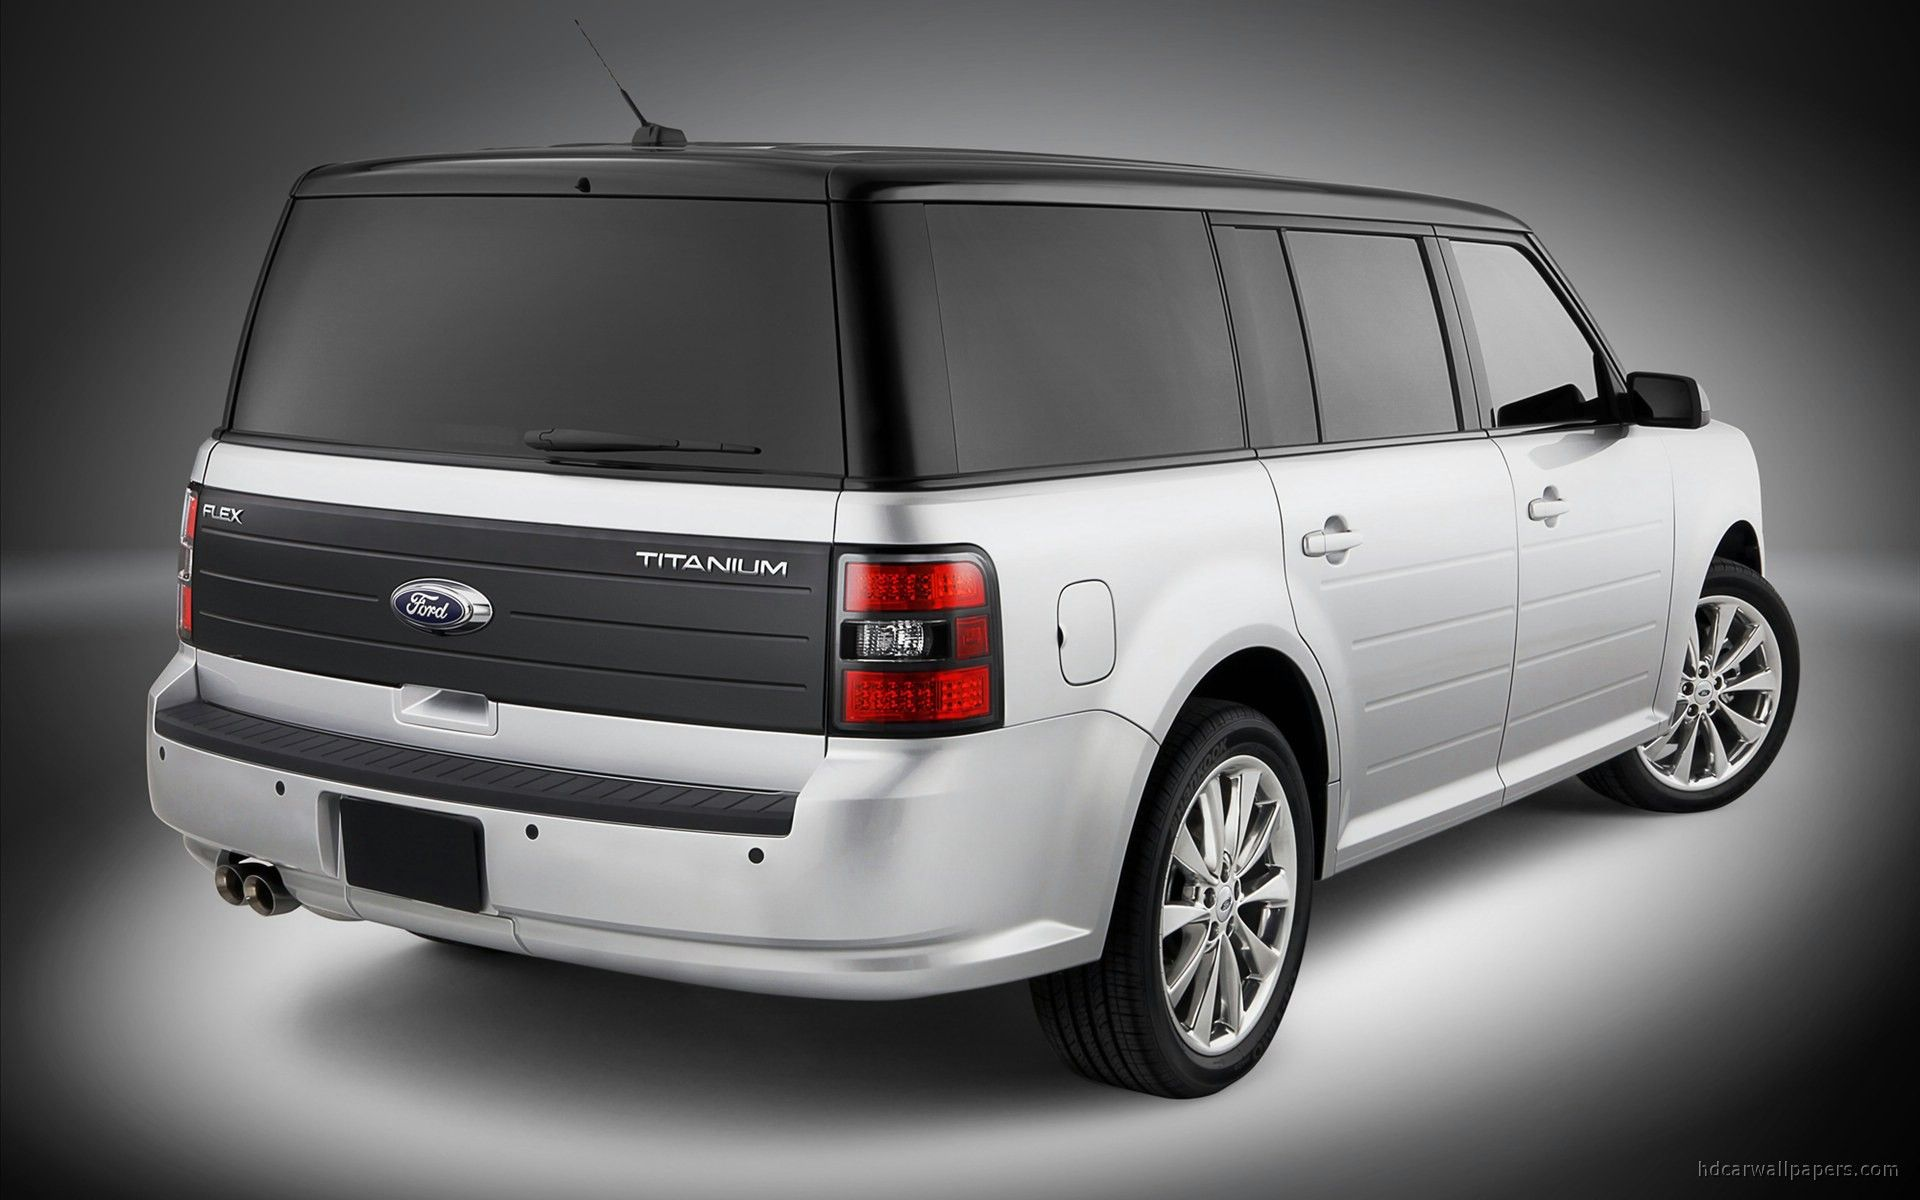 2011 Ford Flex Titanium 2 Hd Wallpapers Http Www Hdcarwallpapers